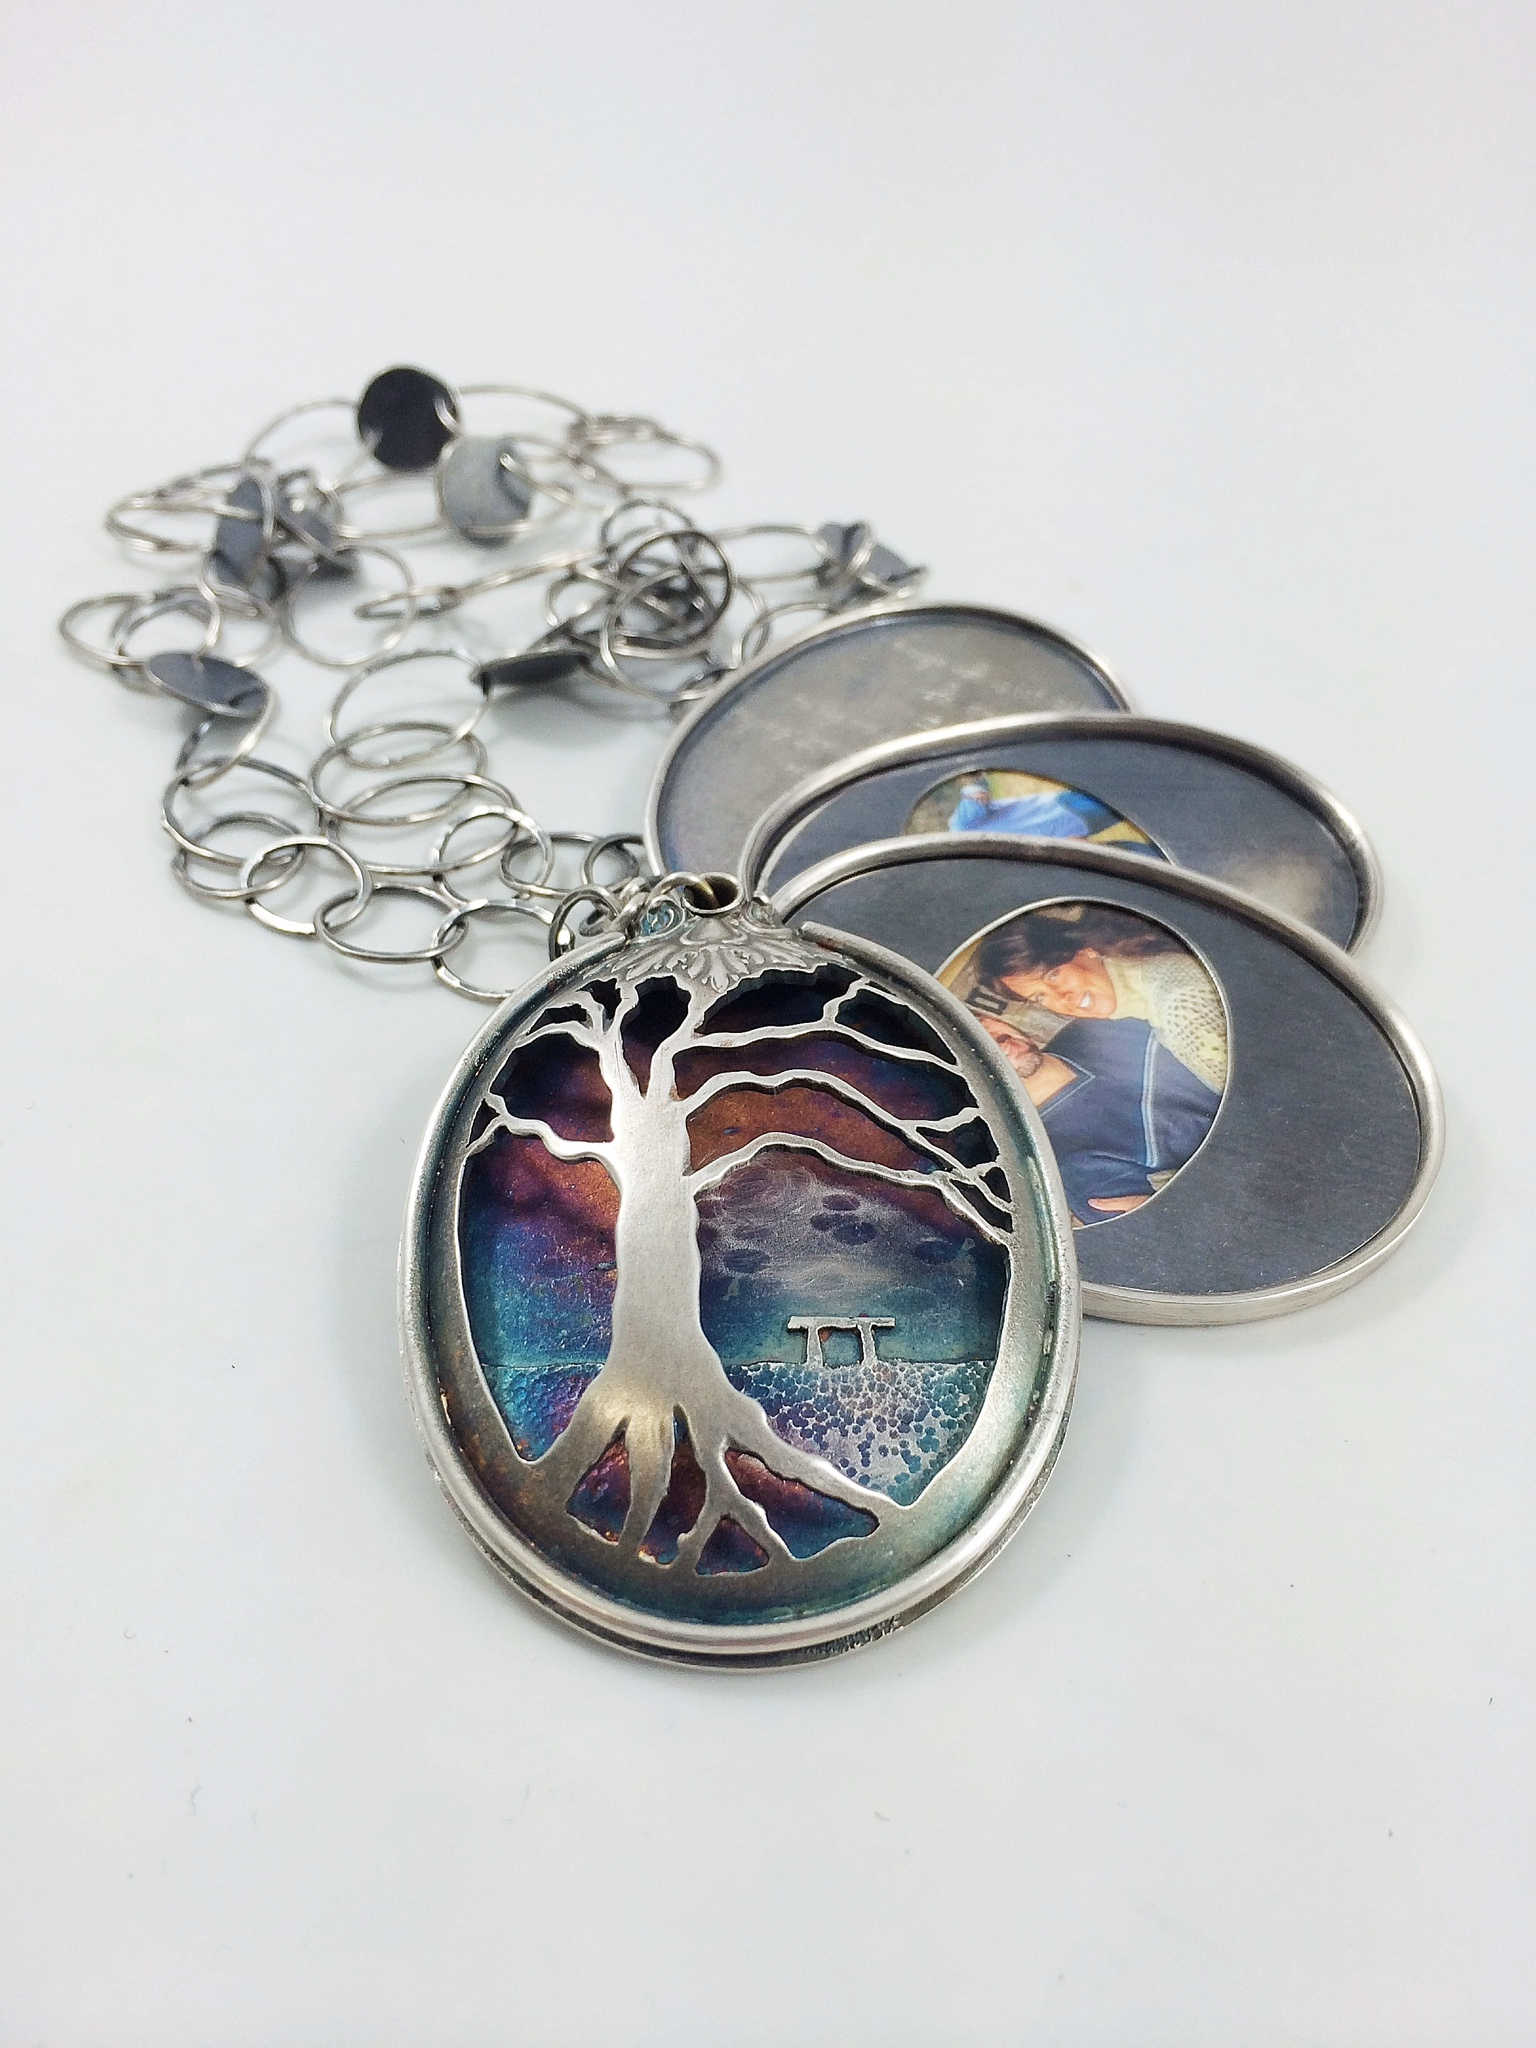 some silver pictures are the crafting review here of musings sterling water locket and just add lockets